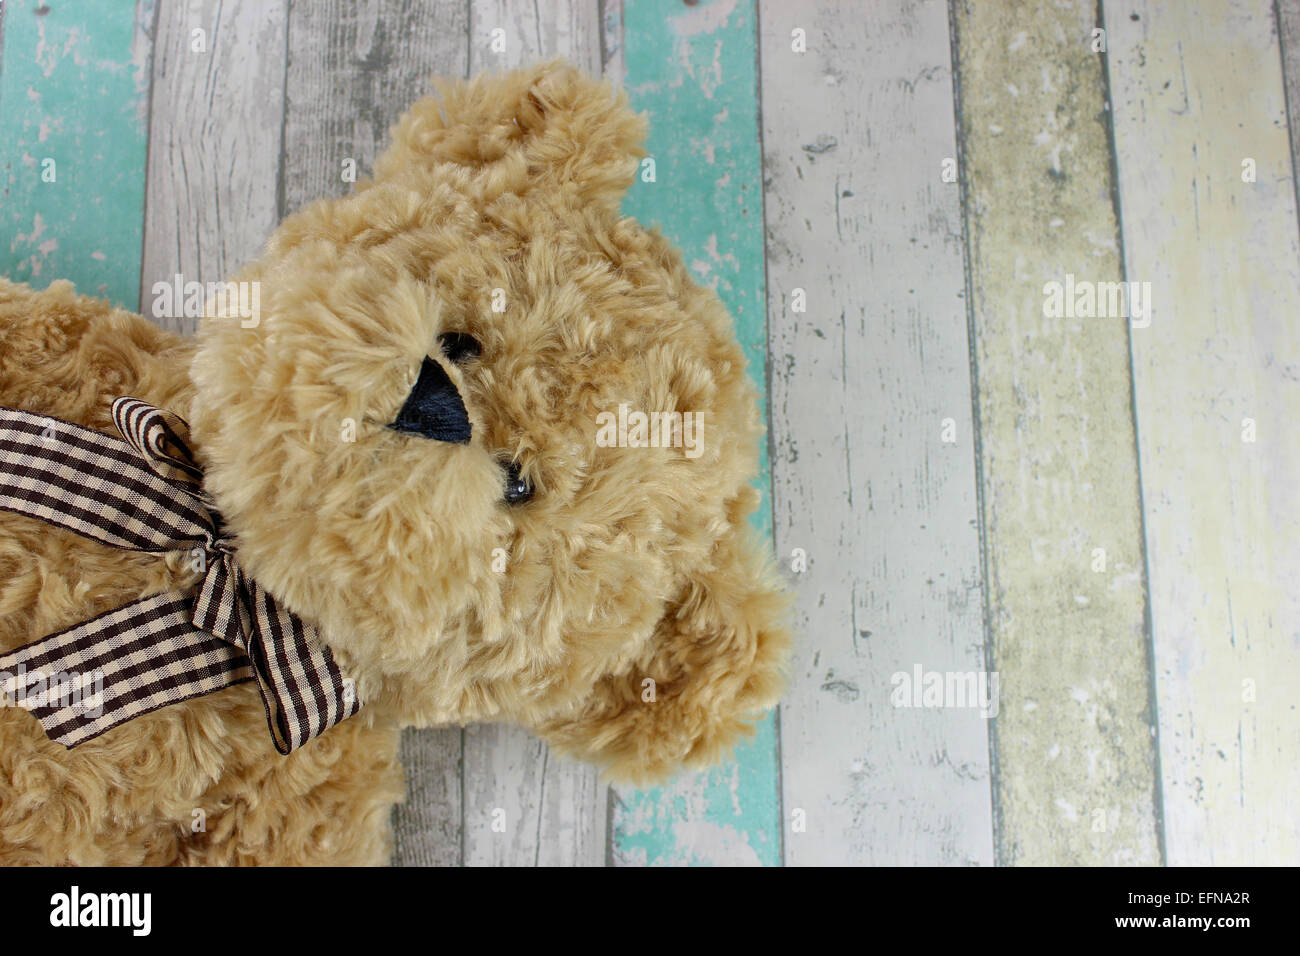 Cute Teddy bear on a distressed wood background. - Stock Image